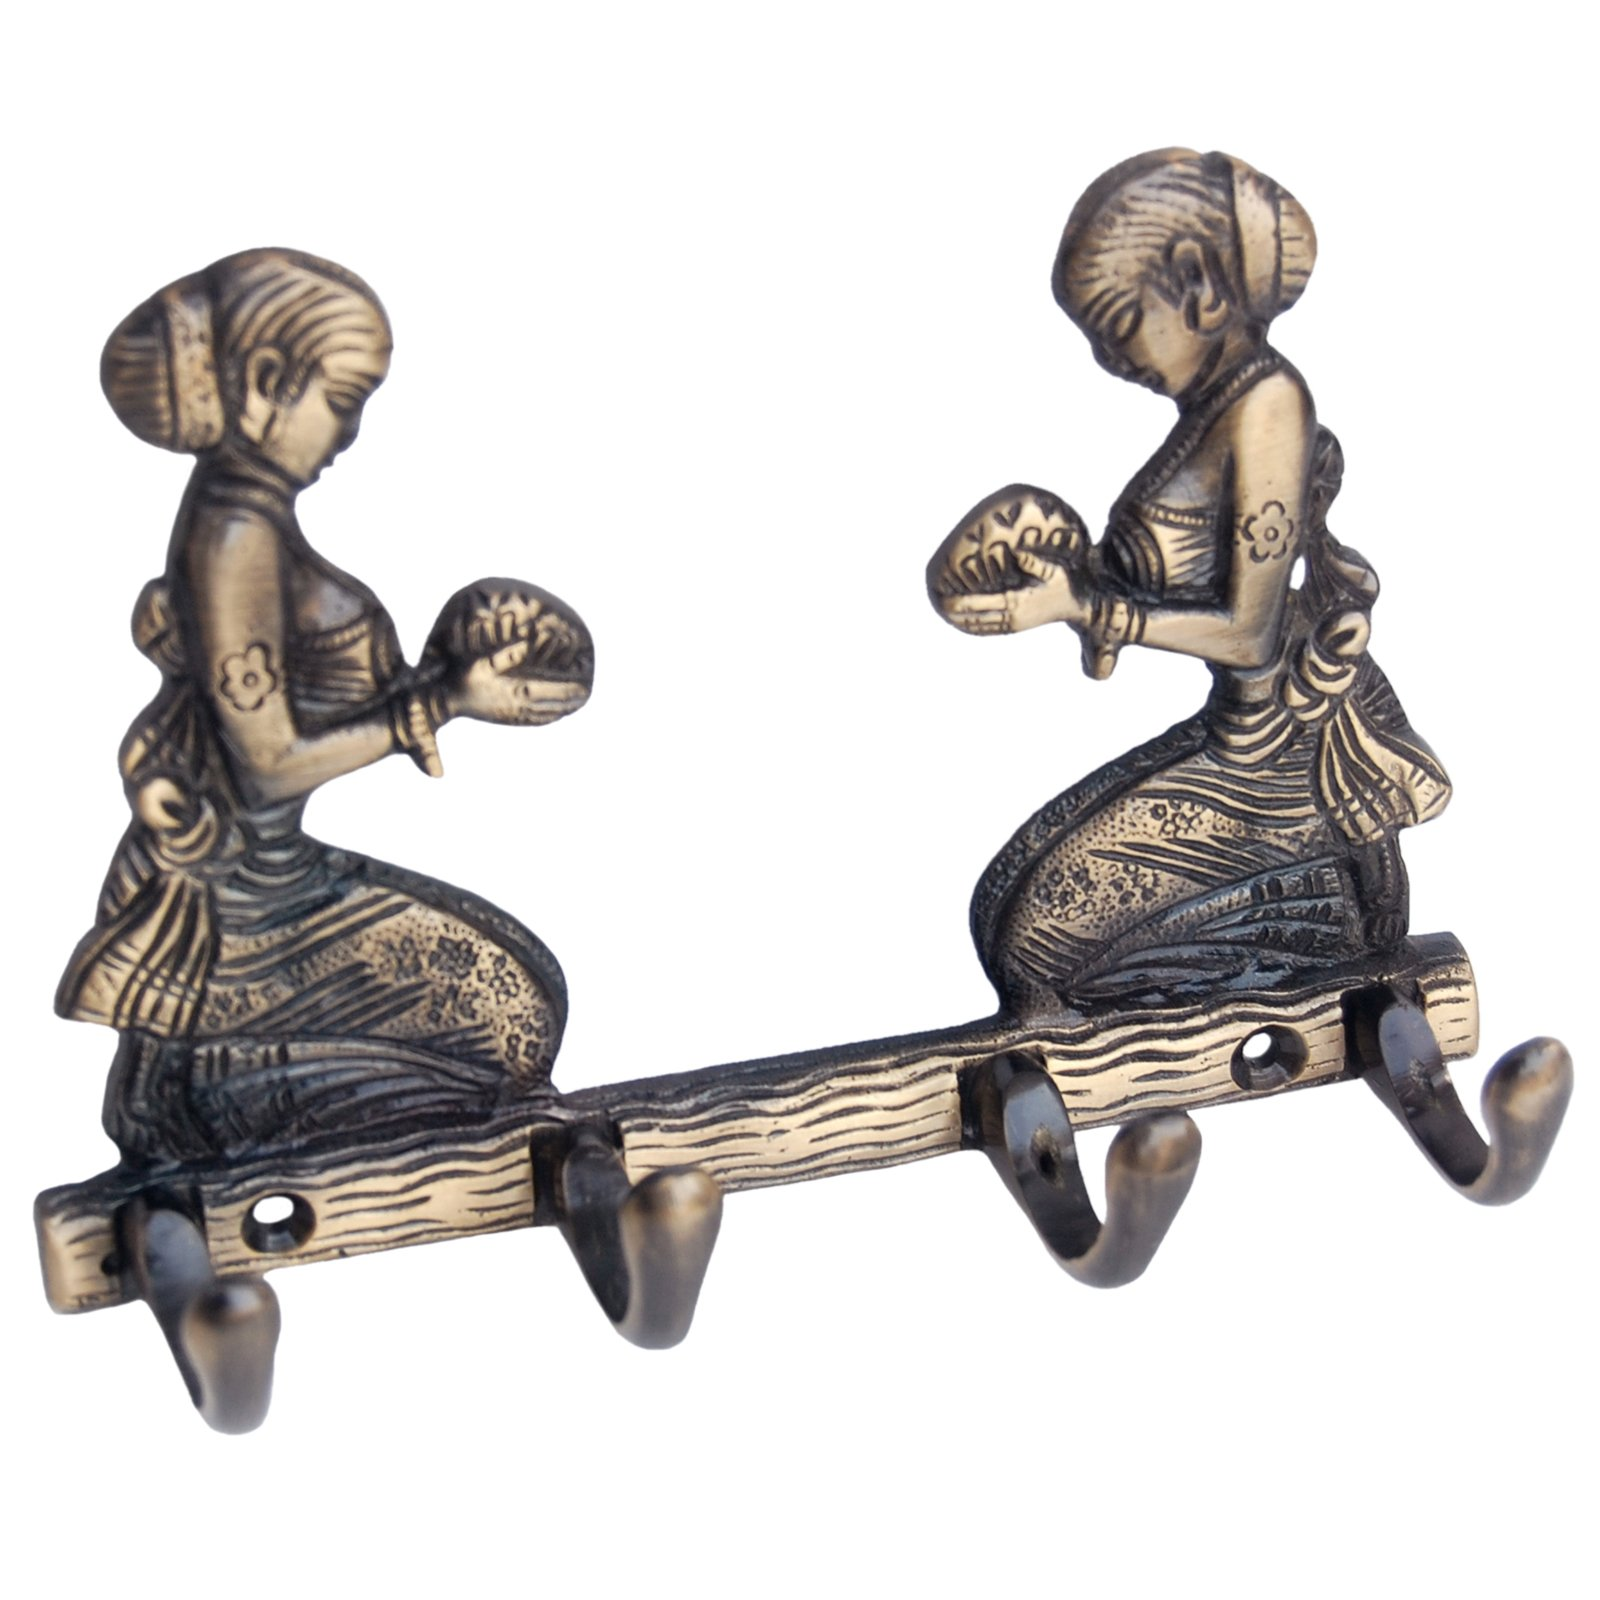 4 hook key holder with two welcome Lady for your valuble keys